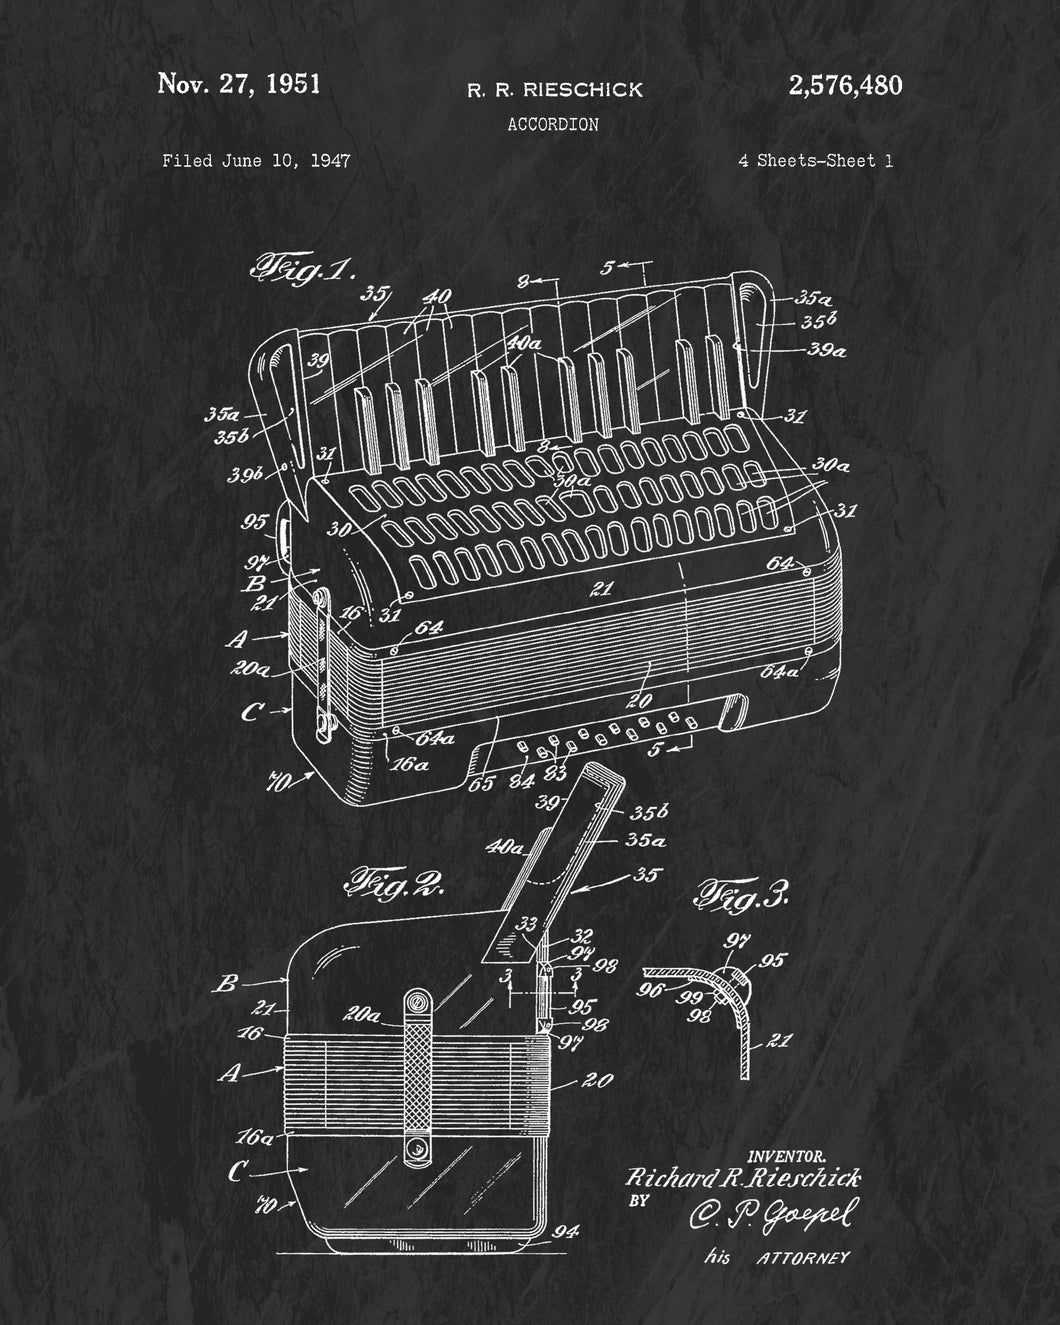 1951 Accordion Patent Art Print (Original Title)